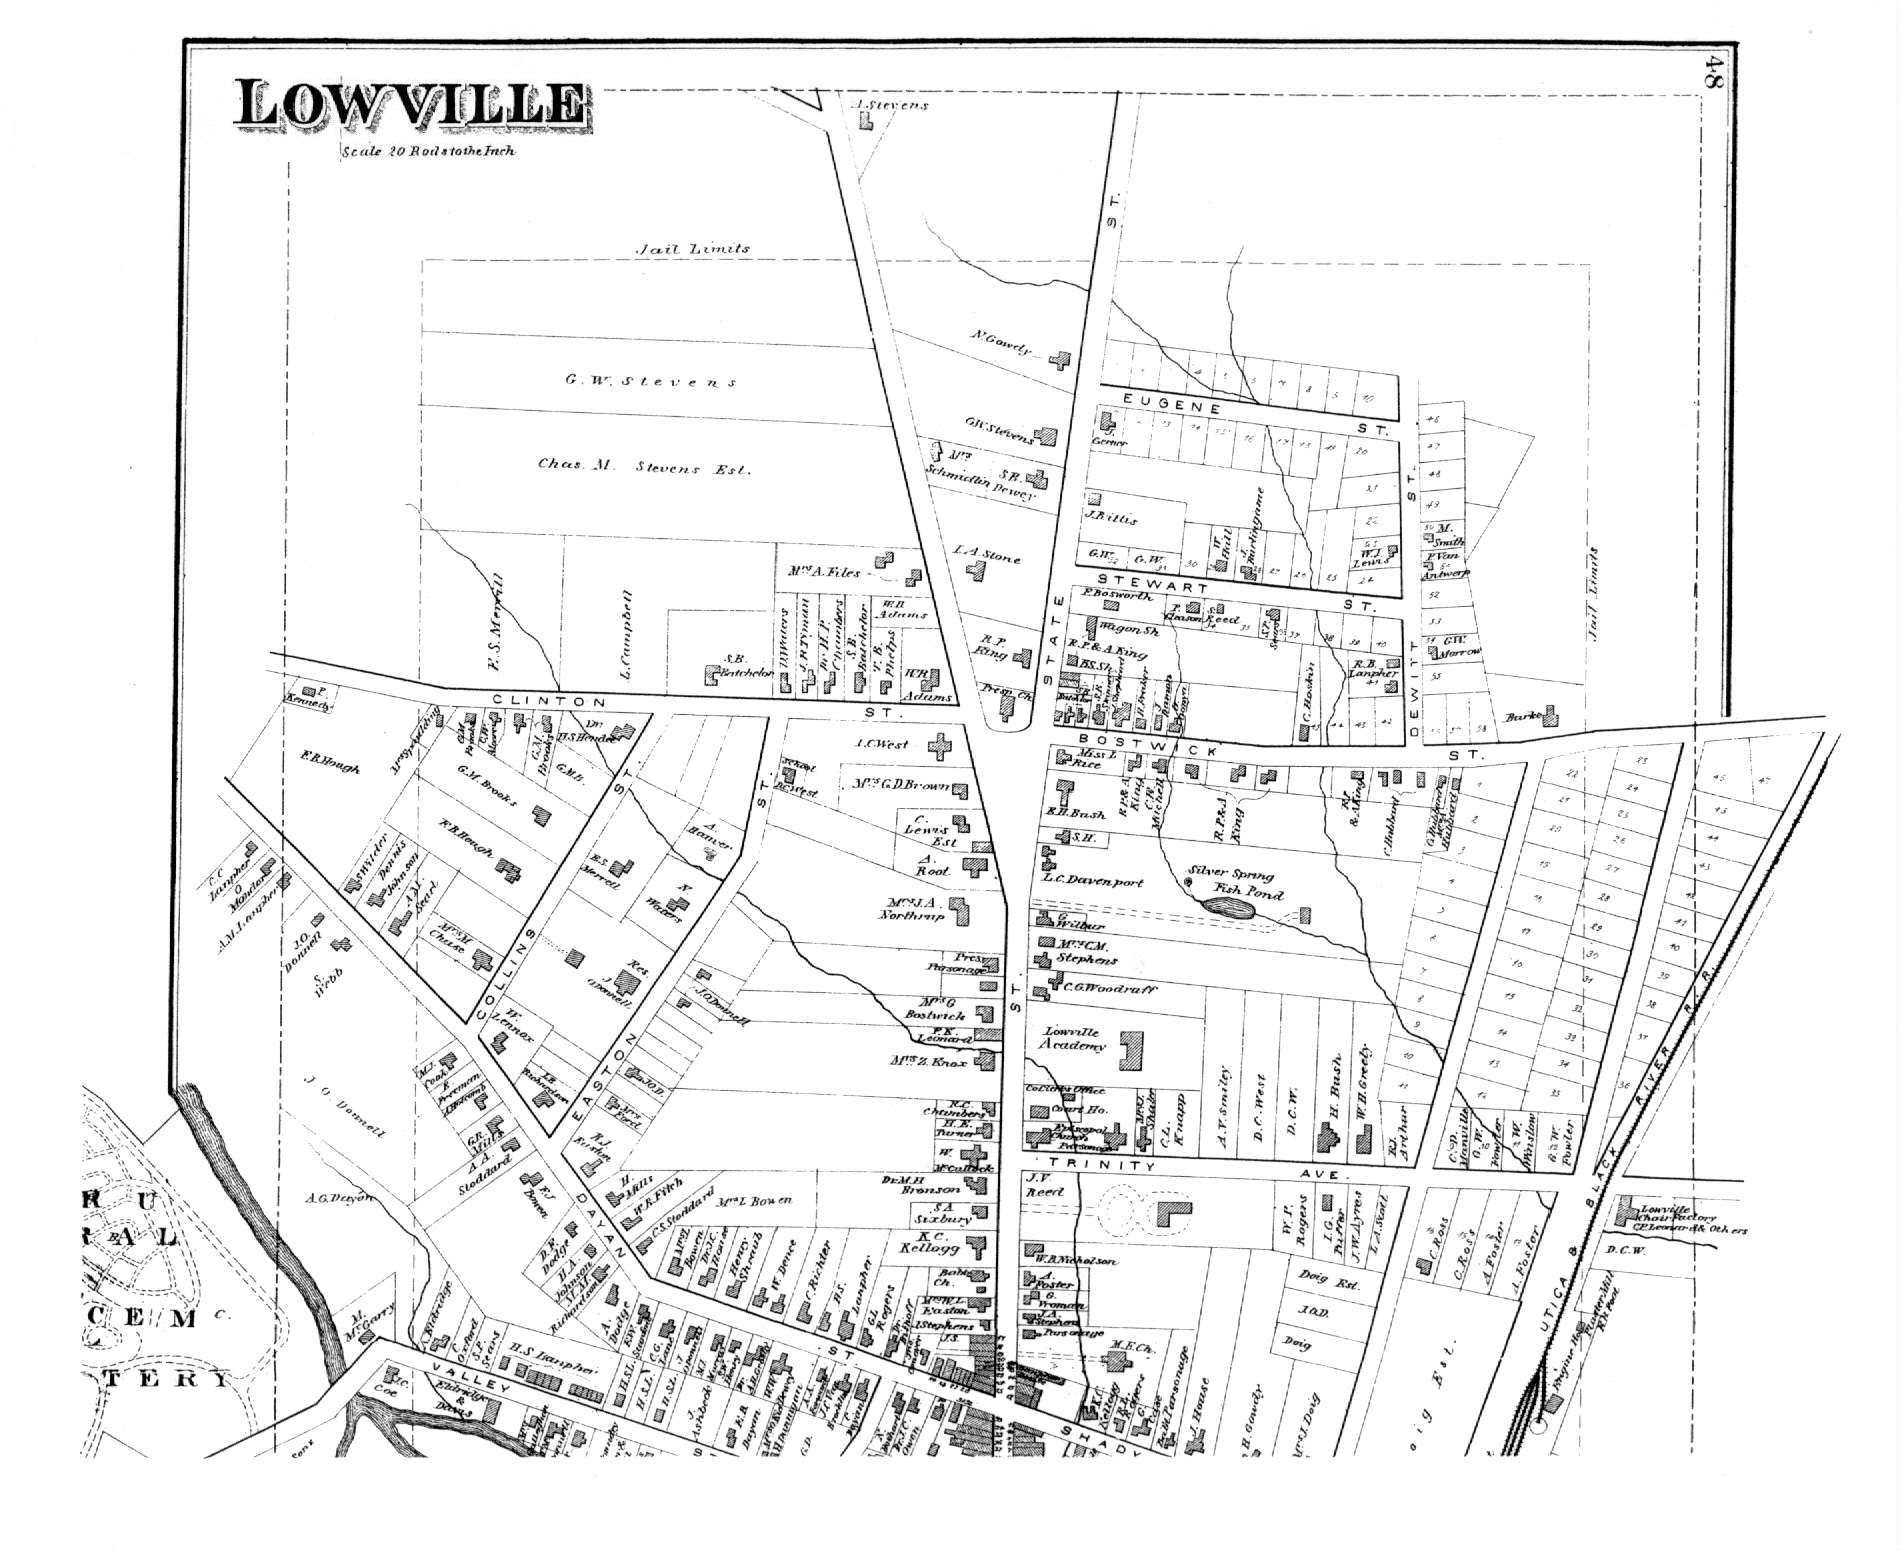 dg beers  atlas of lewis county ny - lowville  north section